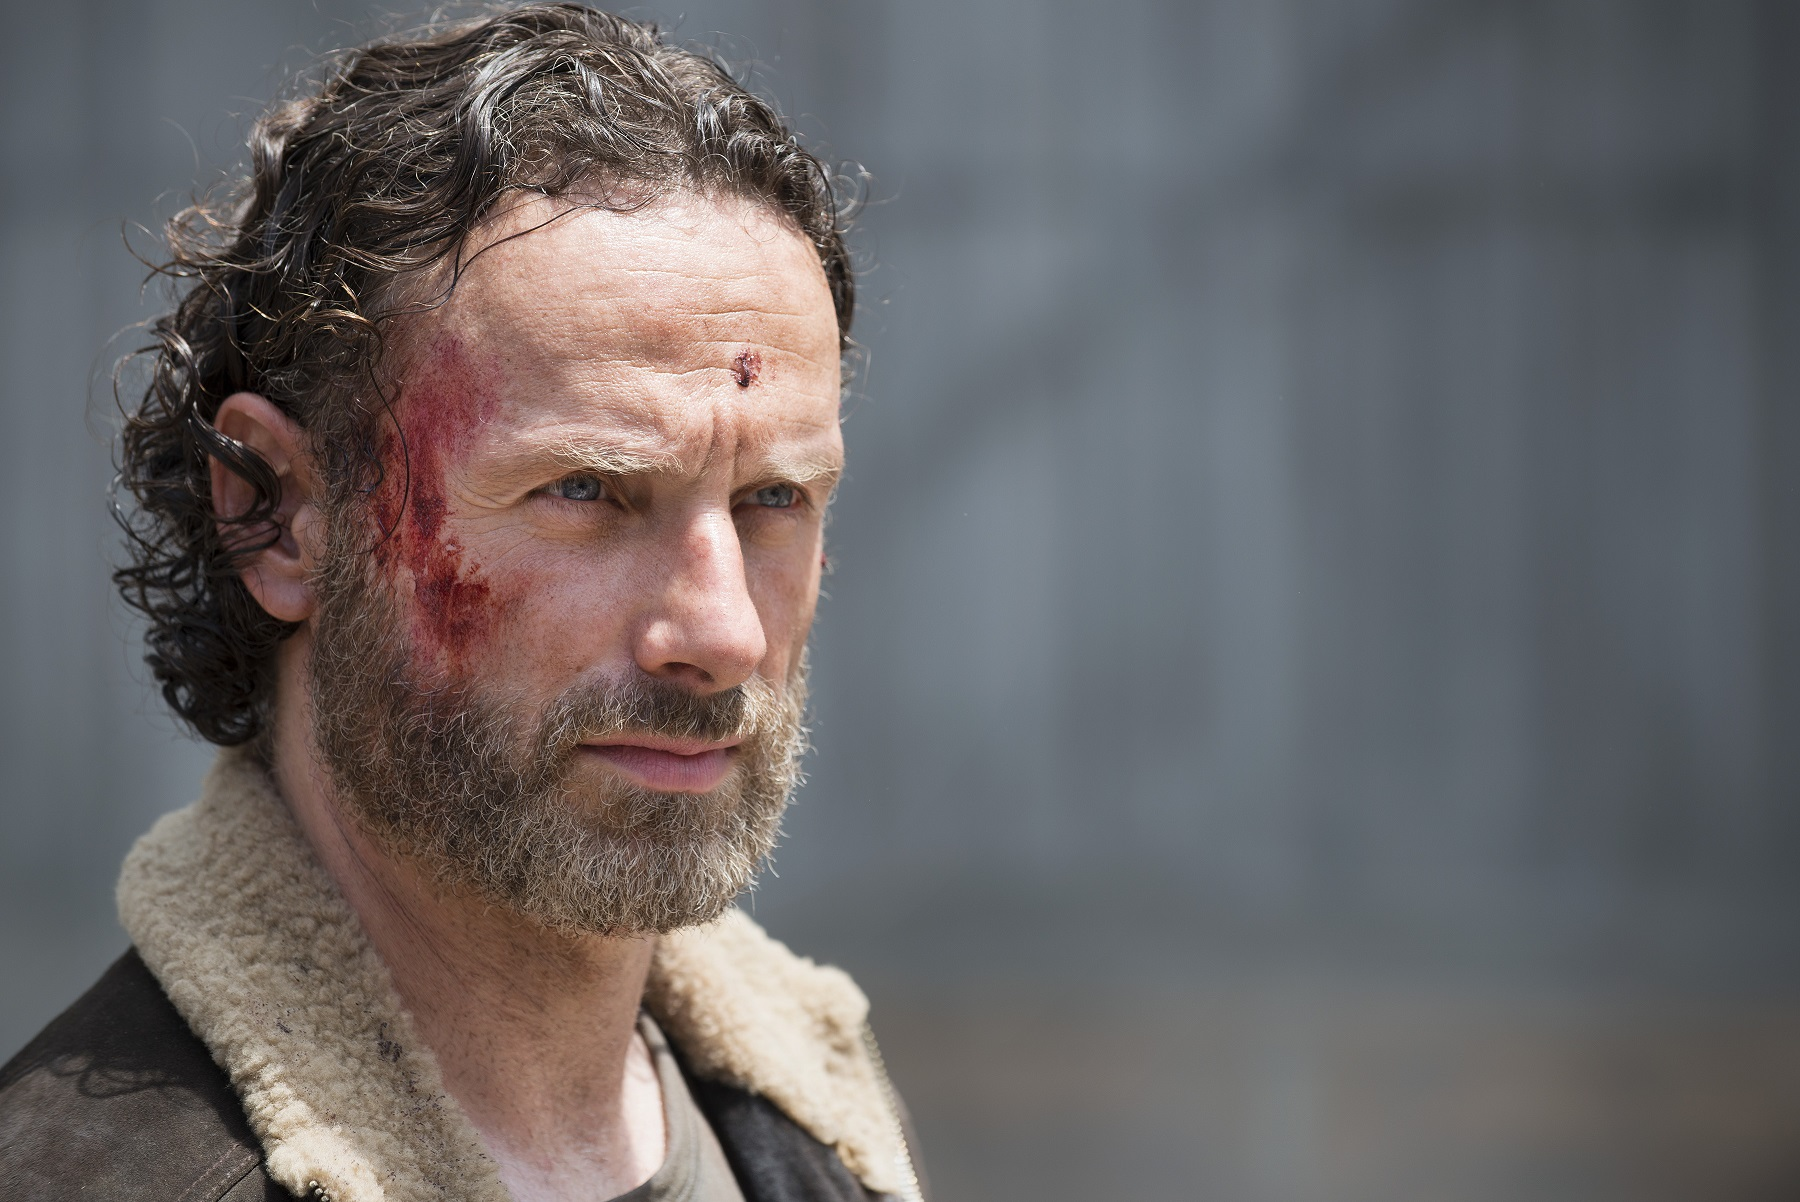 FOX-Sleepy Hollow-The Walking Dead-03FEVEREIRO2015-02